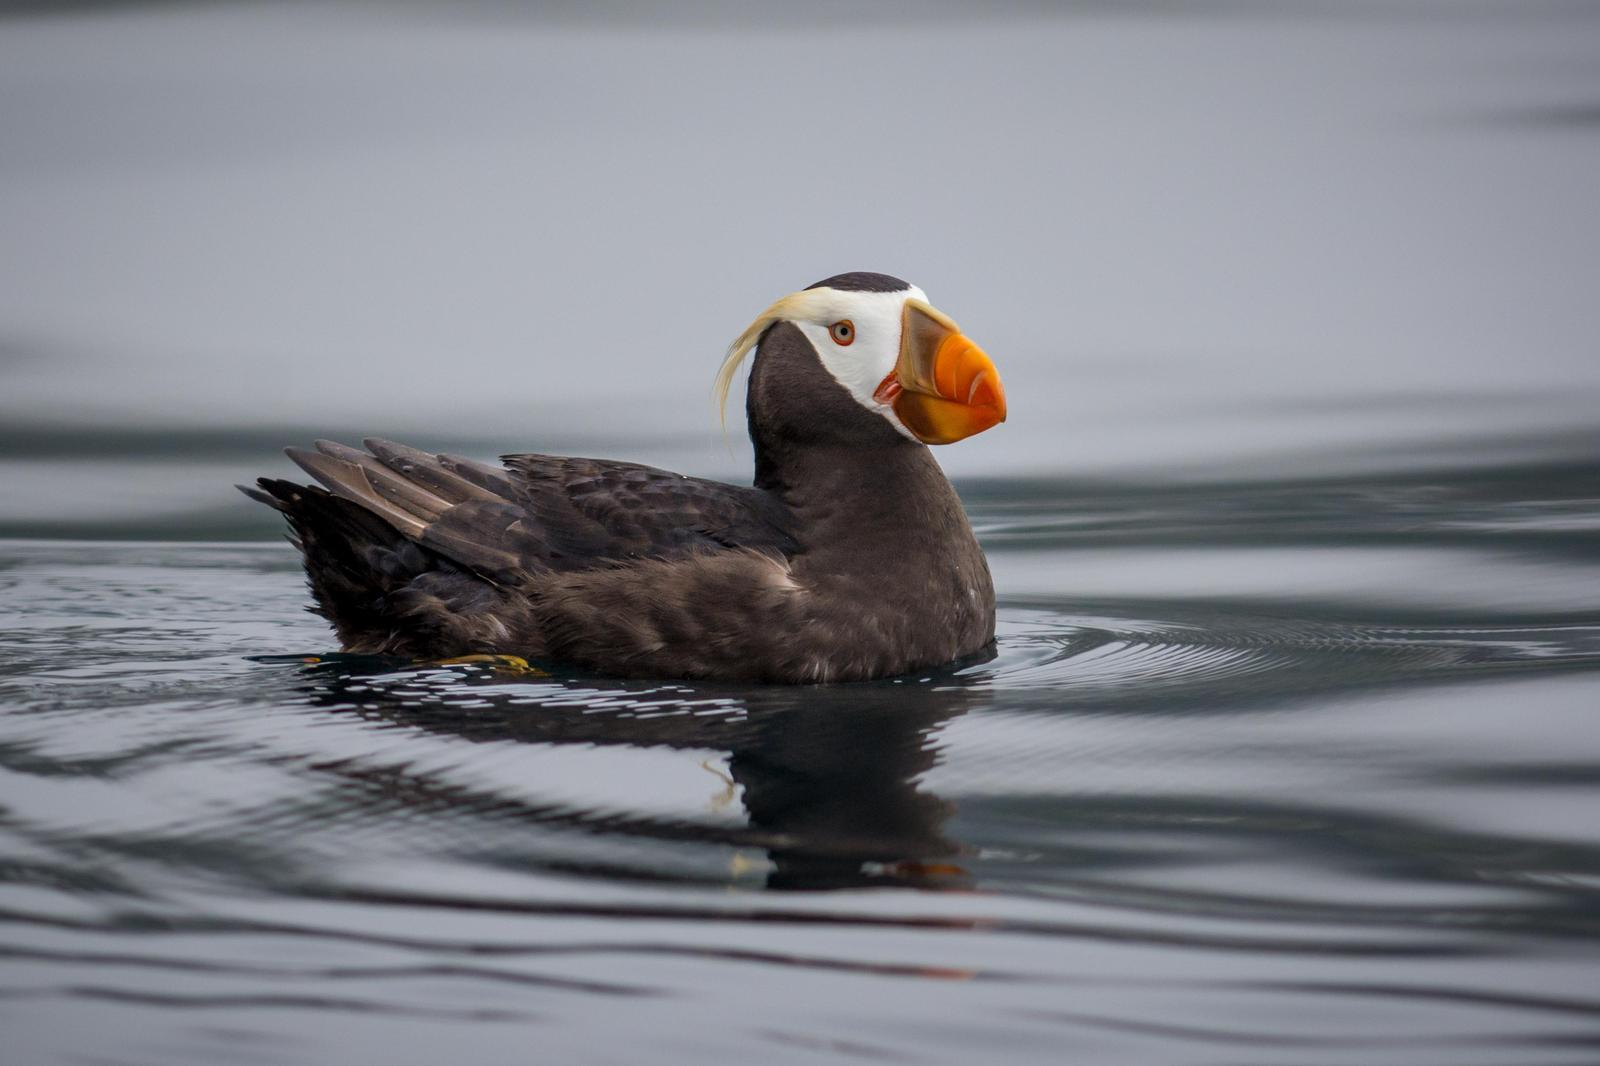 Tufted Puffin Photo by Jesse Hodges